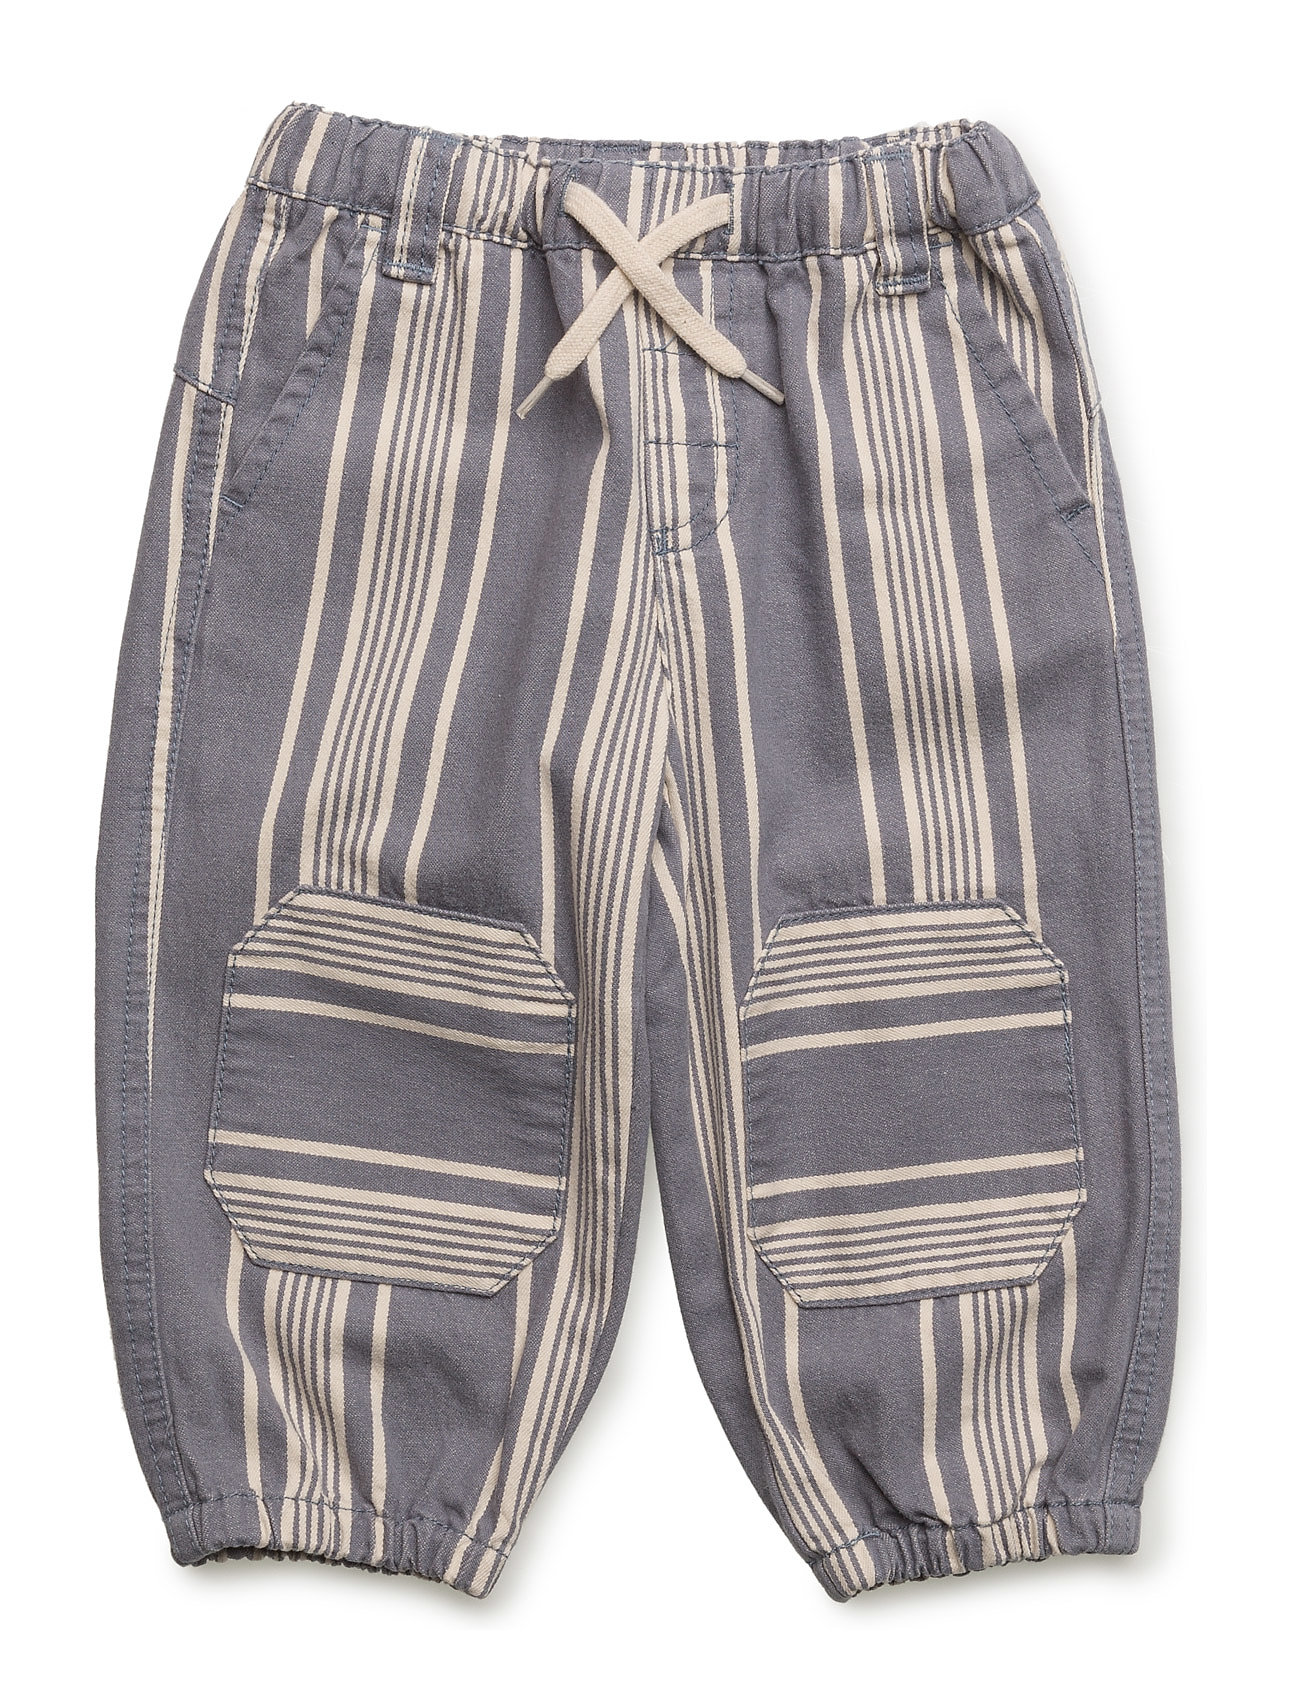 Mini A Ture Baldus, MB Pants - LIGHT INDIGO